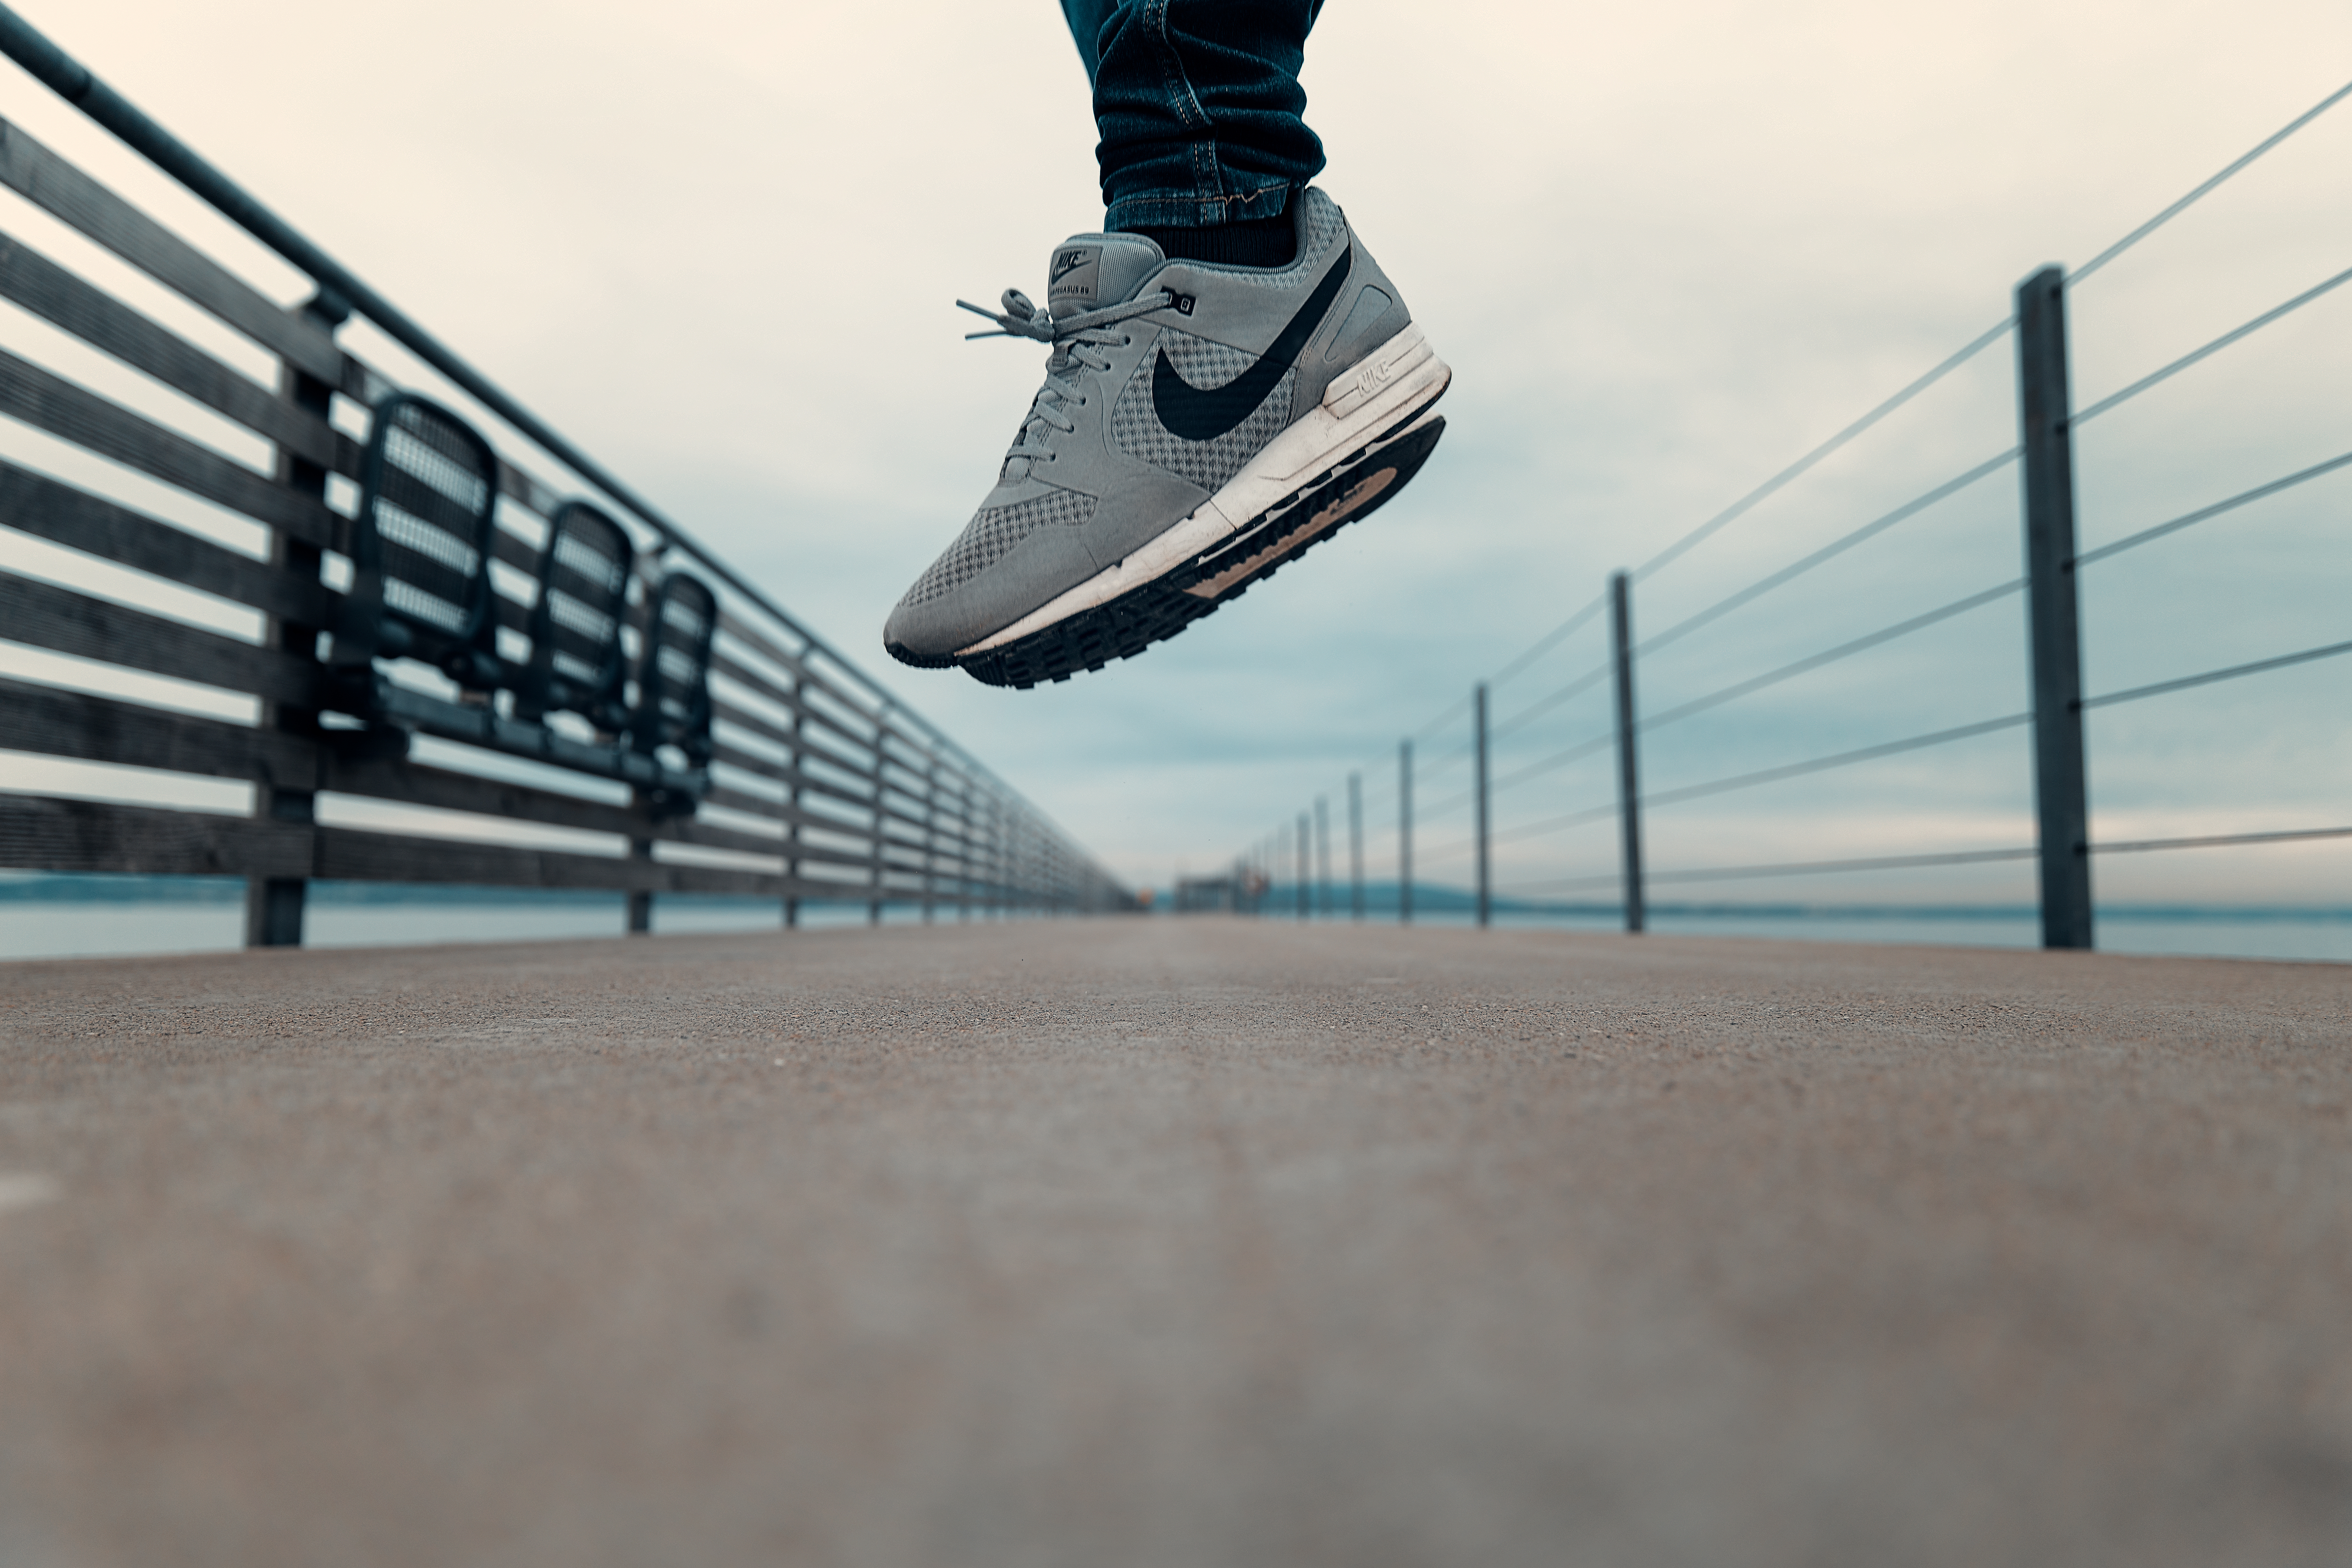 Nike Stock Chart: Free stock photos of nike · Pexels,Chart